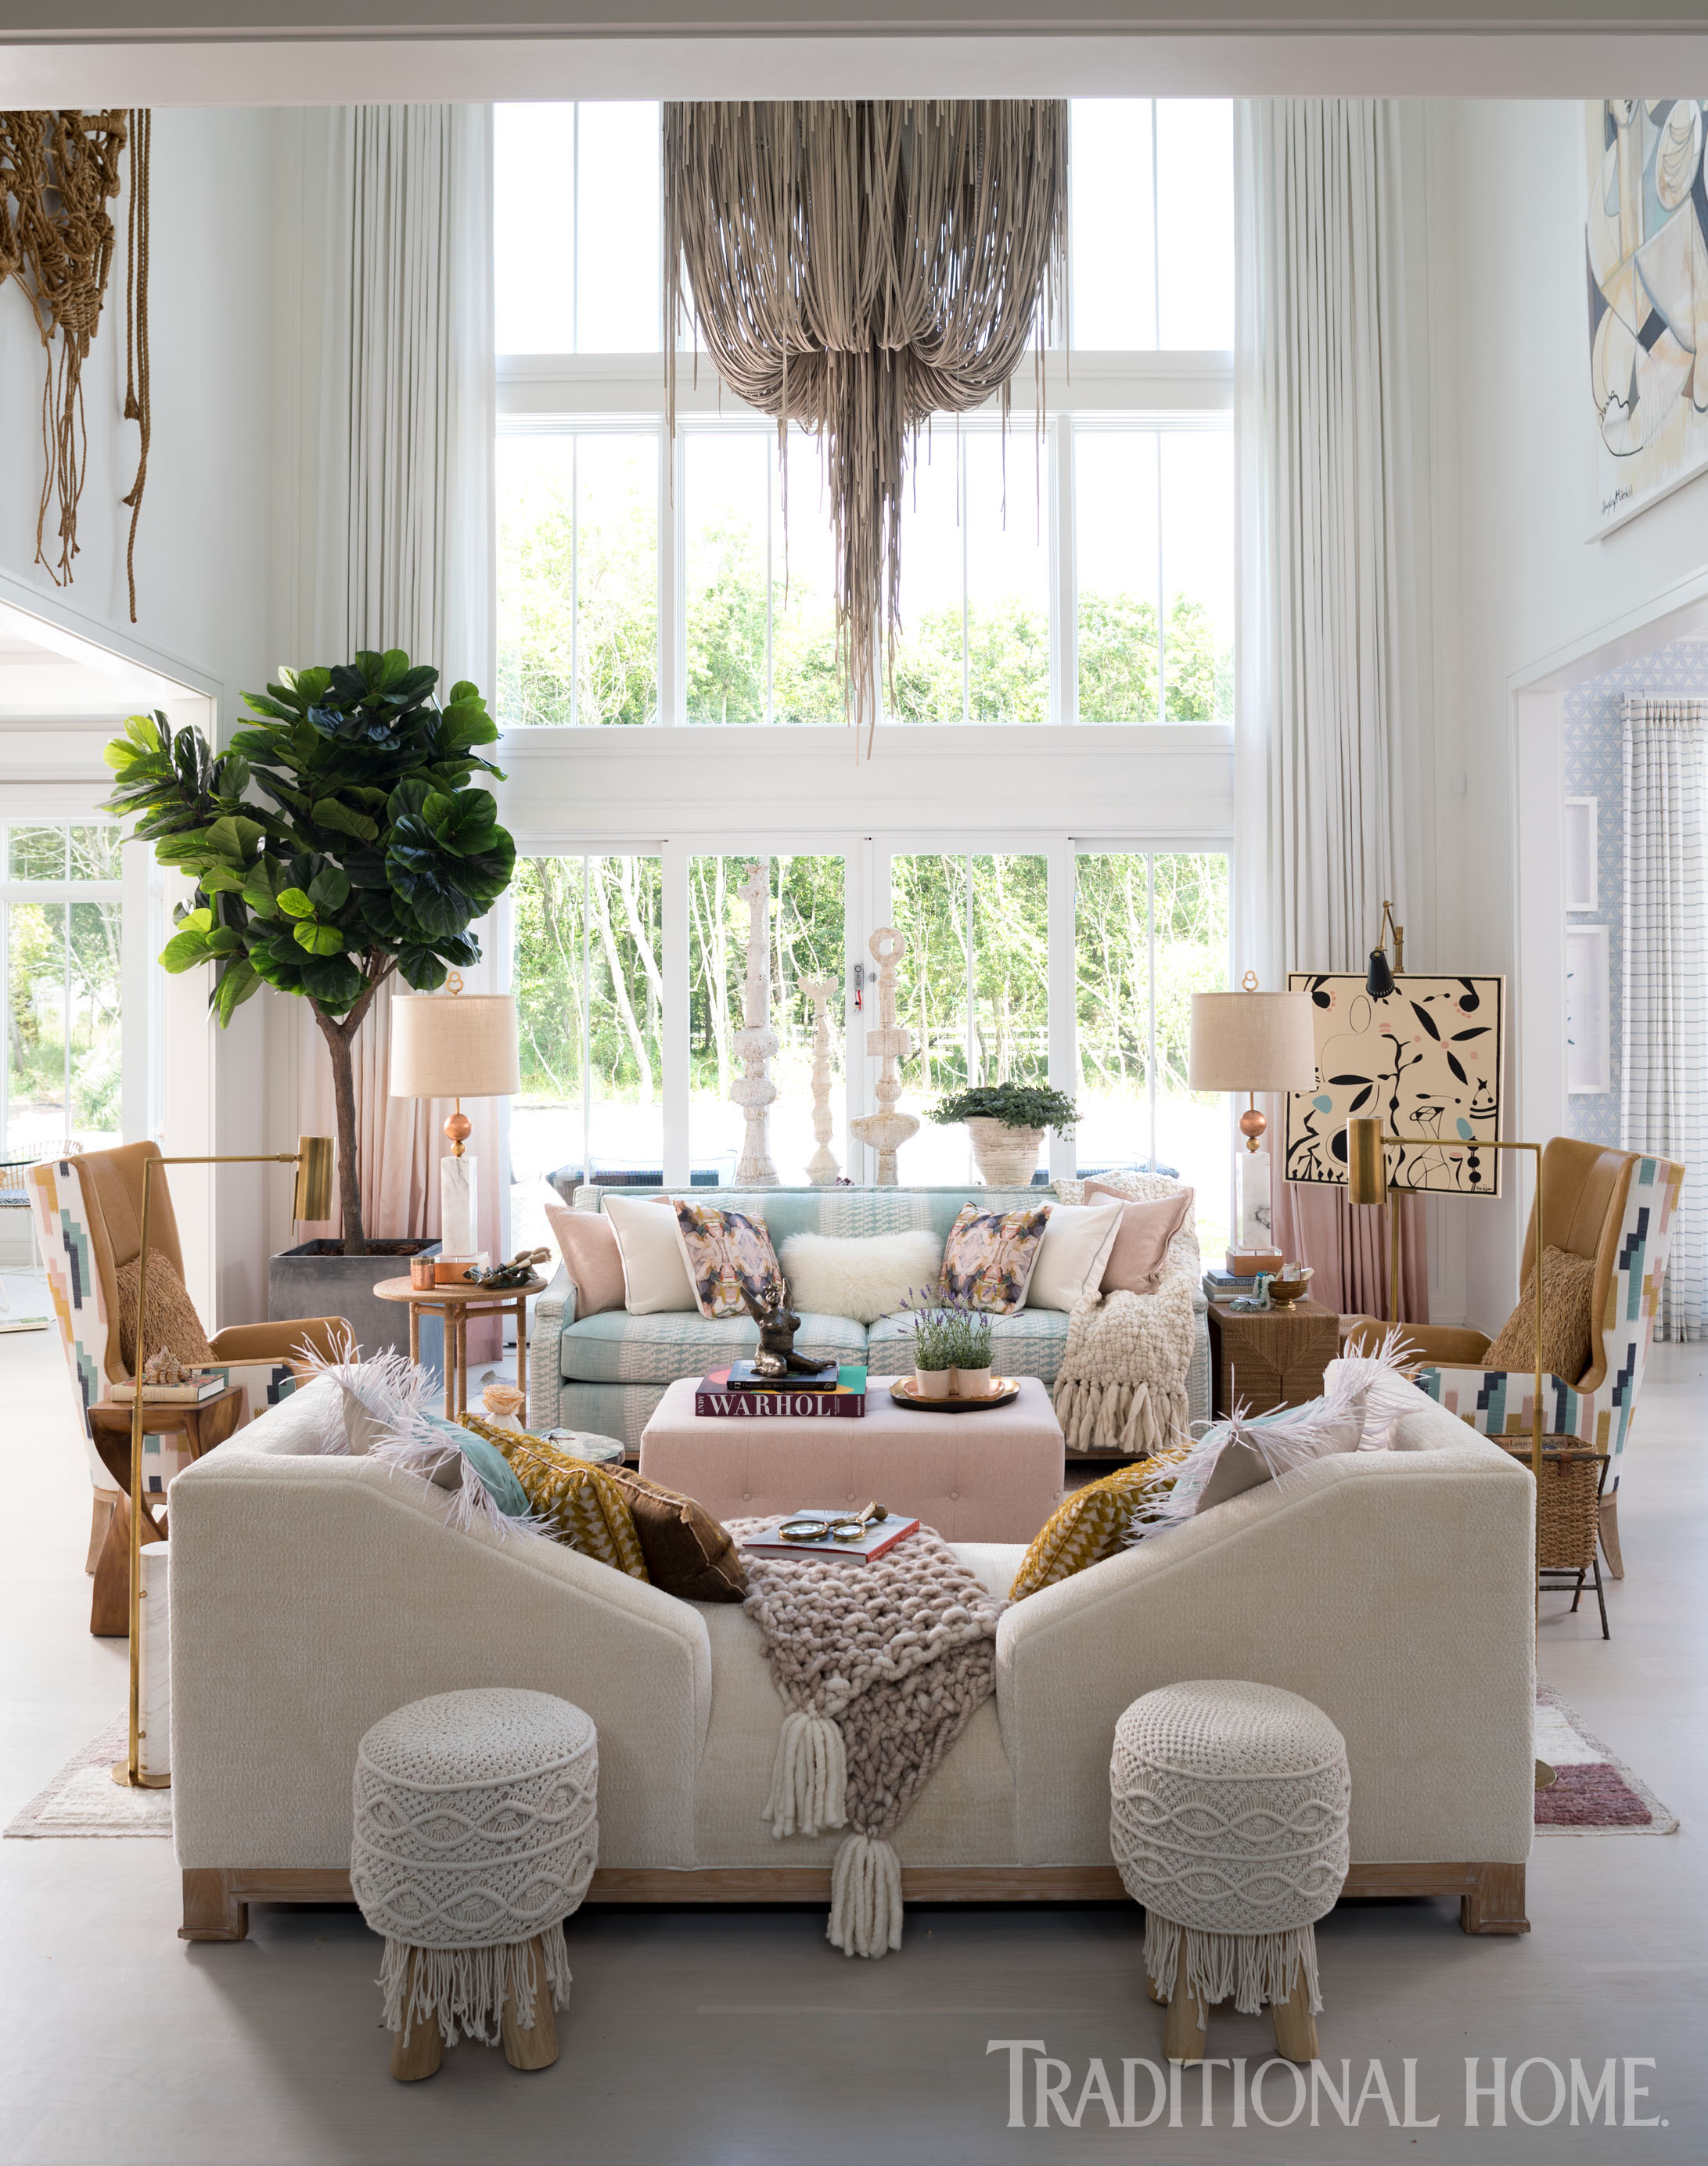 Enjoyable Beachy Home Inspiration From The Hamptons Traditional Home Unemploymentrelief Wooden Chair Designs For Living Room Unemploymentrelieforg